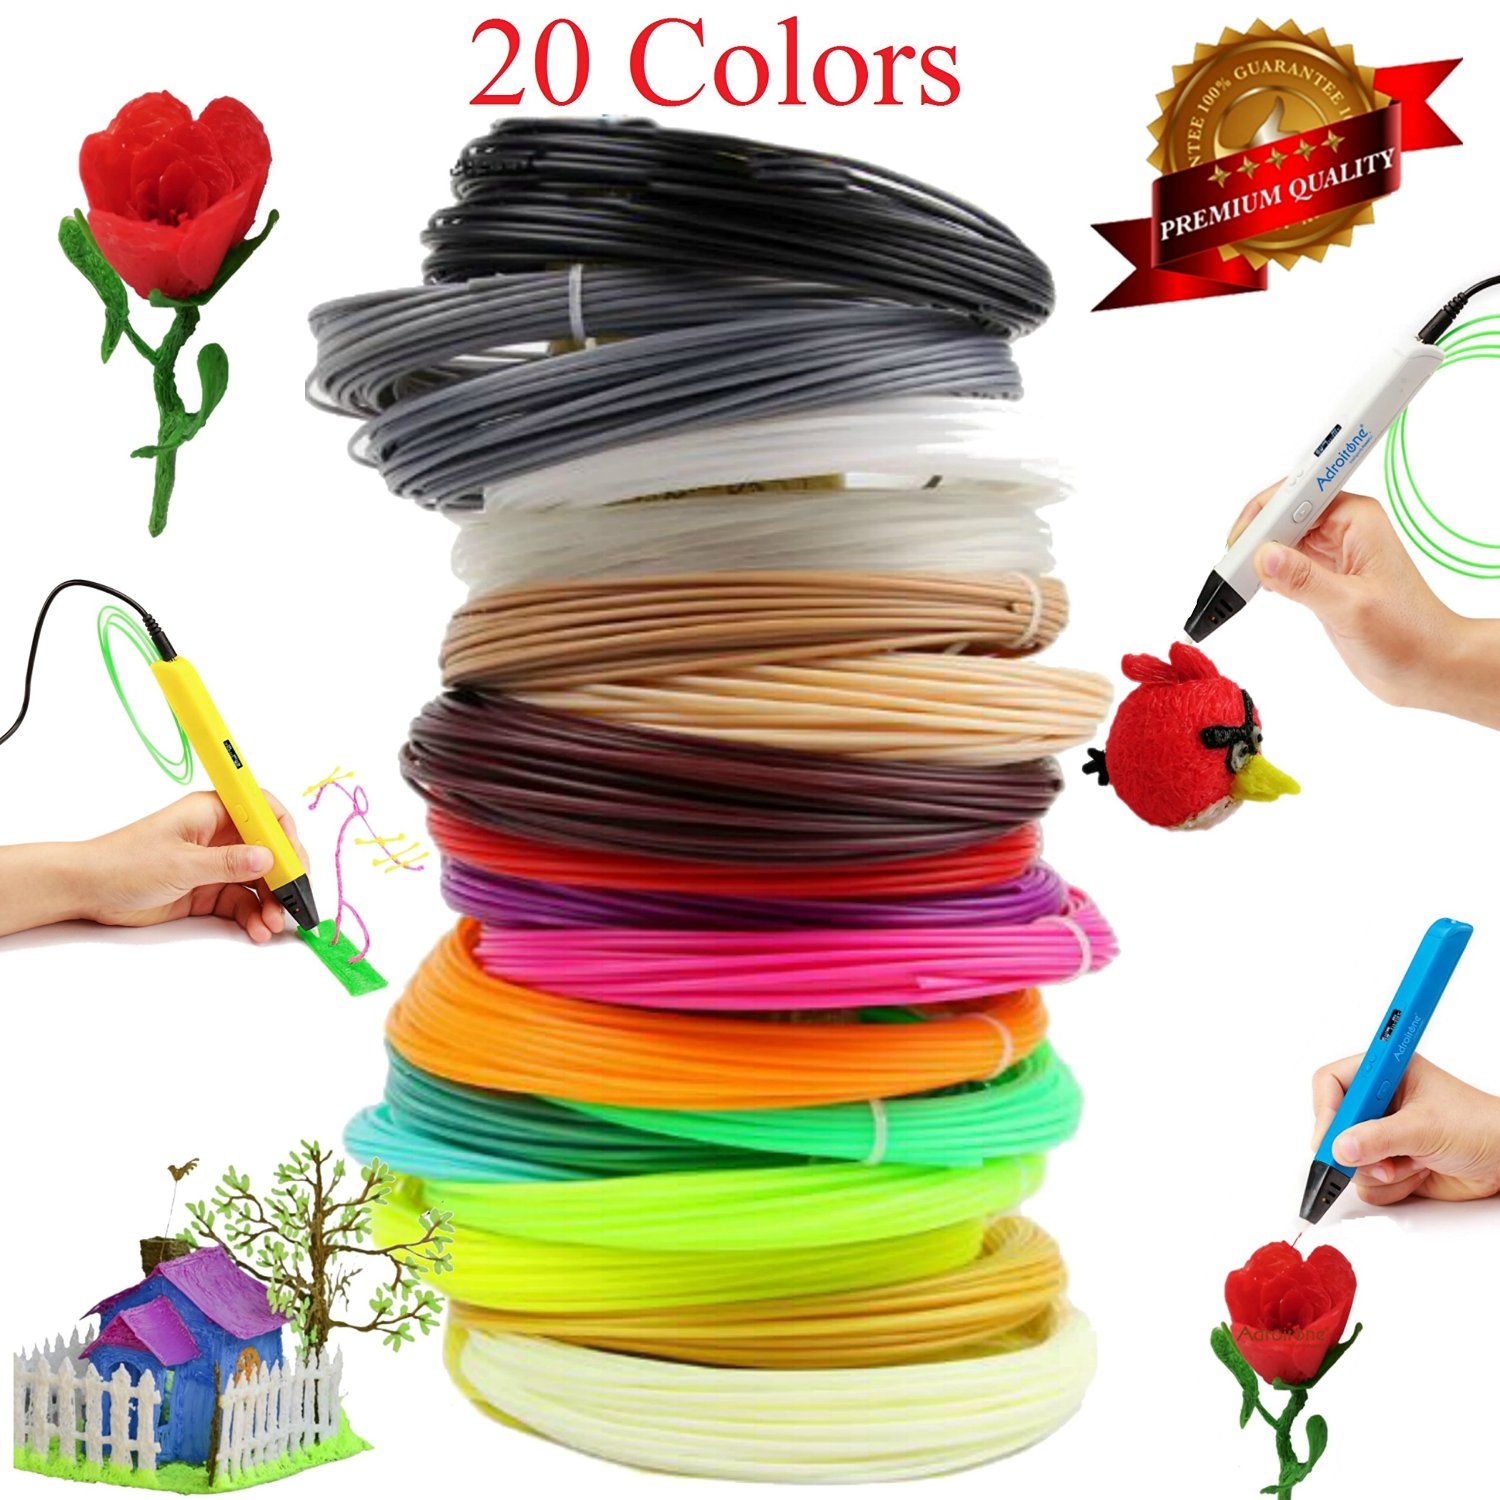 3 d Printing Pen Consumable Environmental Protection Non-toxic PLA HIPS1.75mm 3D Magic Pen Filament Refills - 20 Colors 1 75mm pla 3d printer filament printing refills 10m